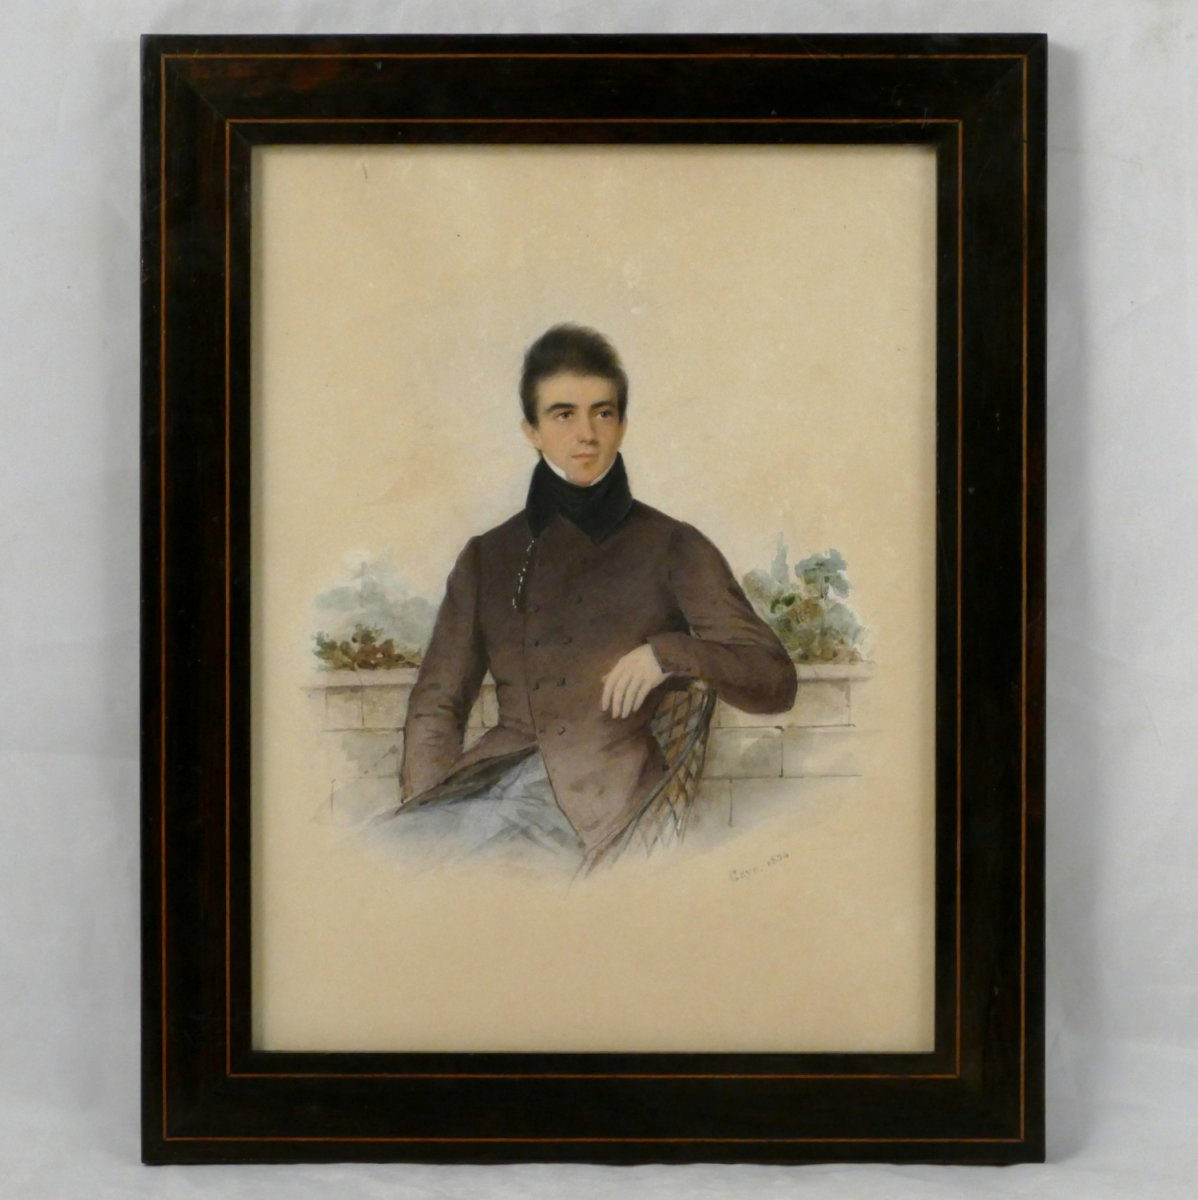 Joseph Gaye, Portrait Of A Handsome Young Man, 1854.